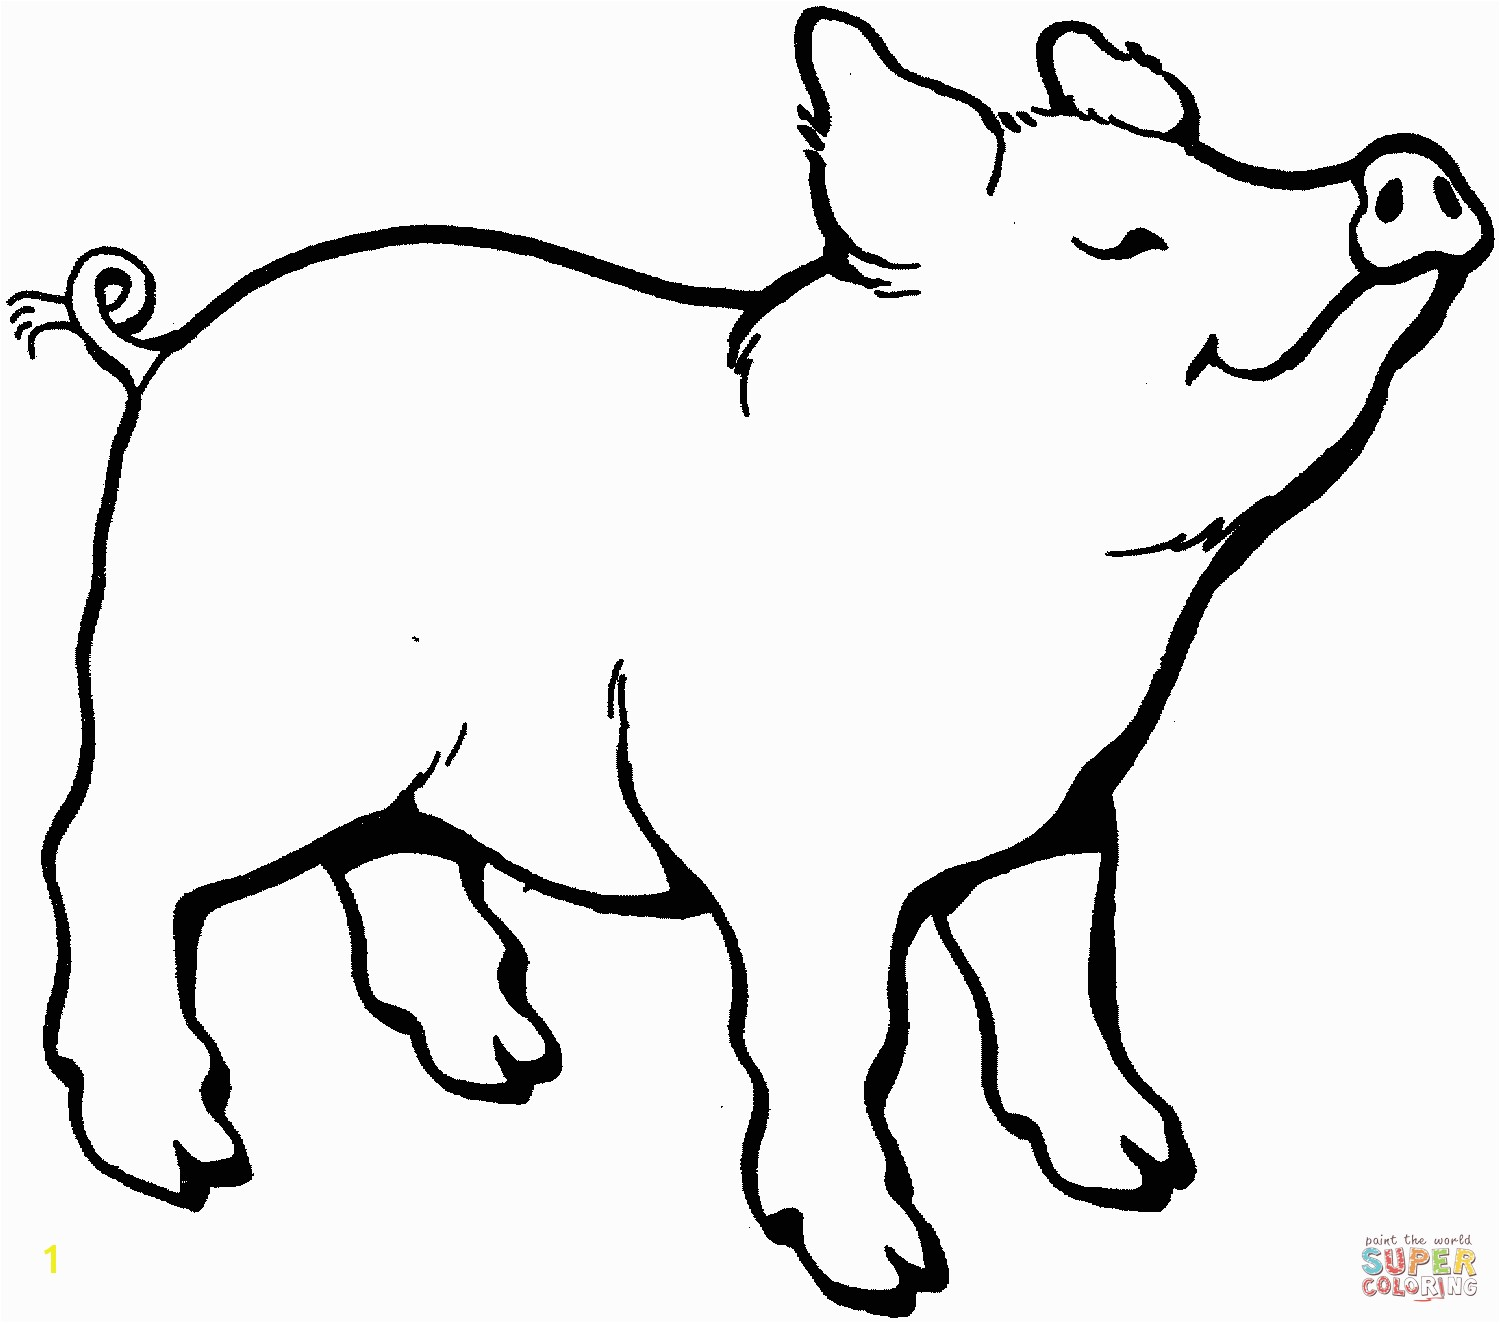 the Pig Smells Something coloring pages to view printable